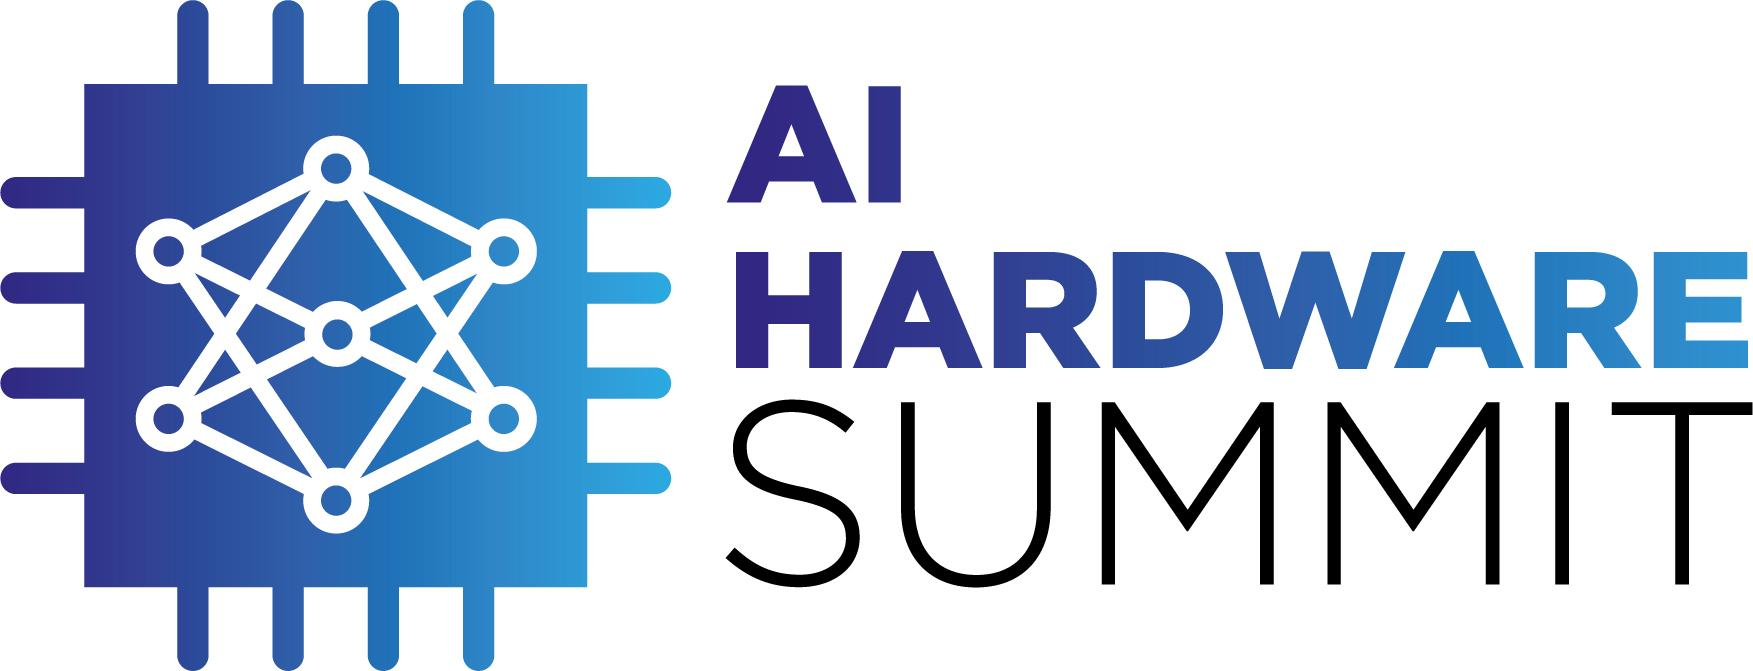 AI Hardware Summit 2019